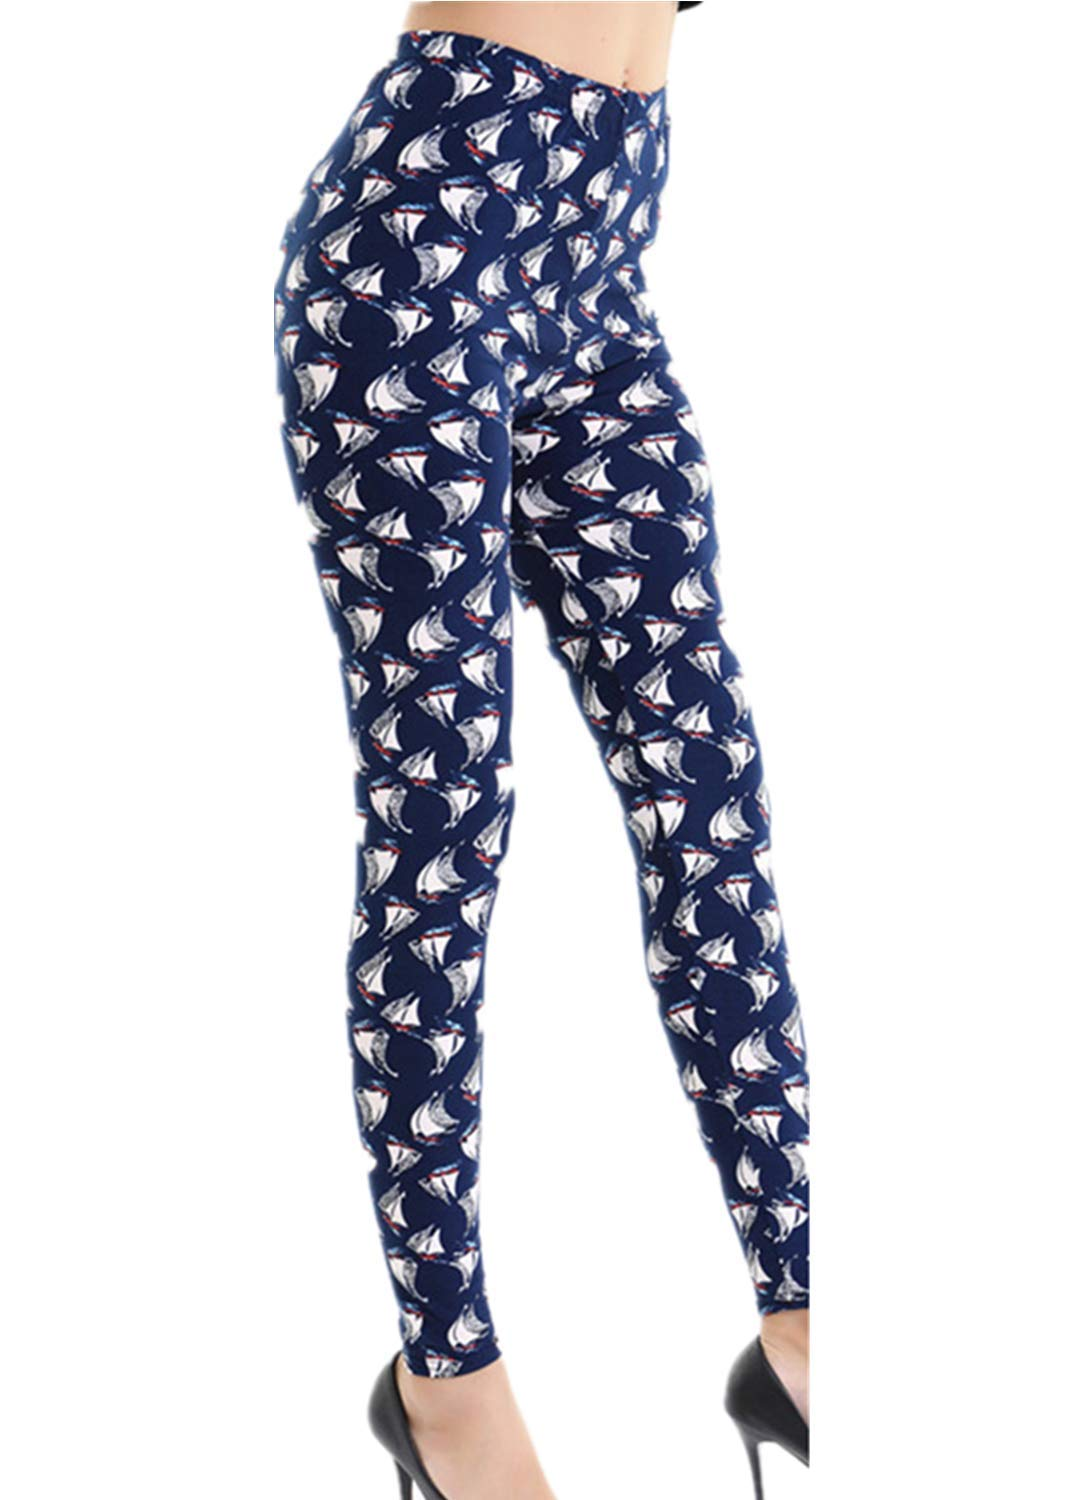 ZZpioneer Yoga Pants for Women High Waist Tight Trousers Casual Starry Printed Tummy Control Leggings Pencil Pants(One Size,Multicolor-4)